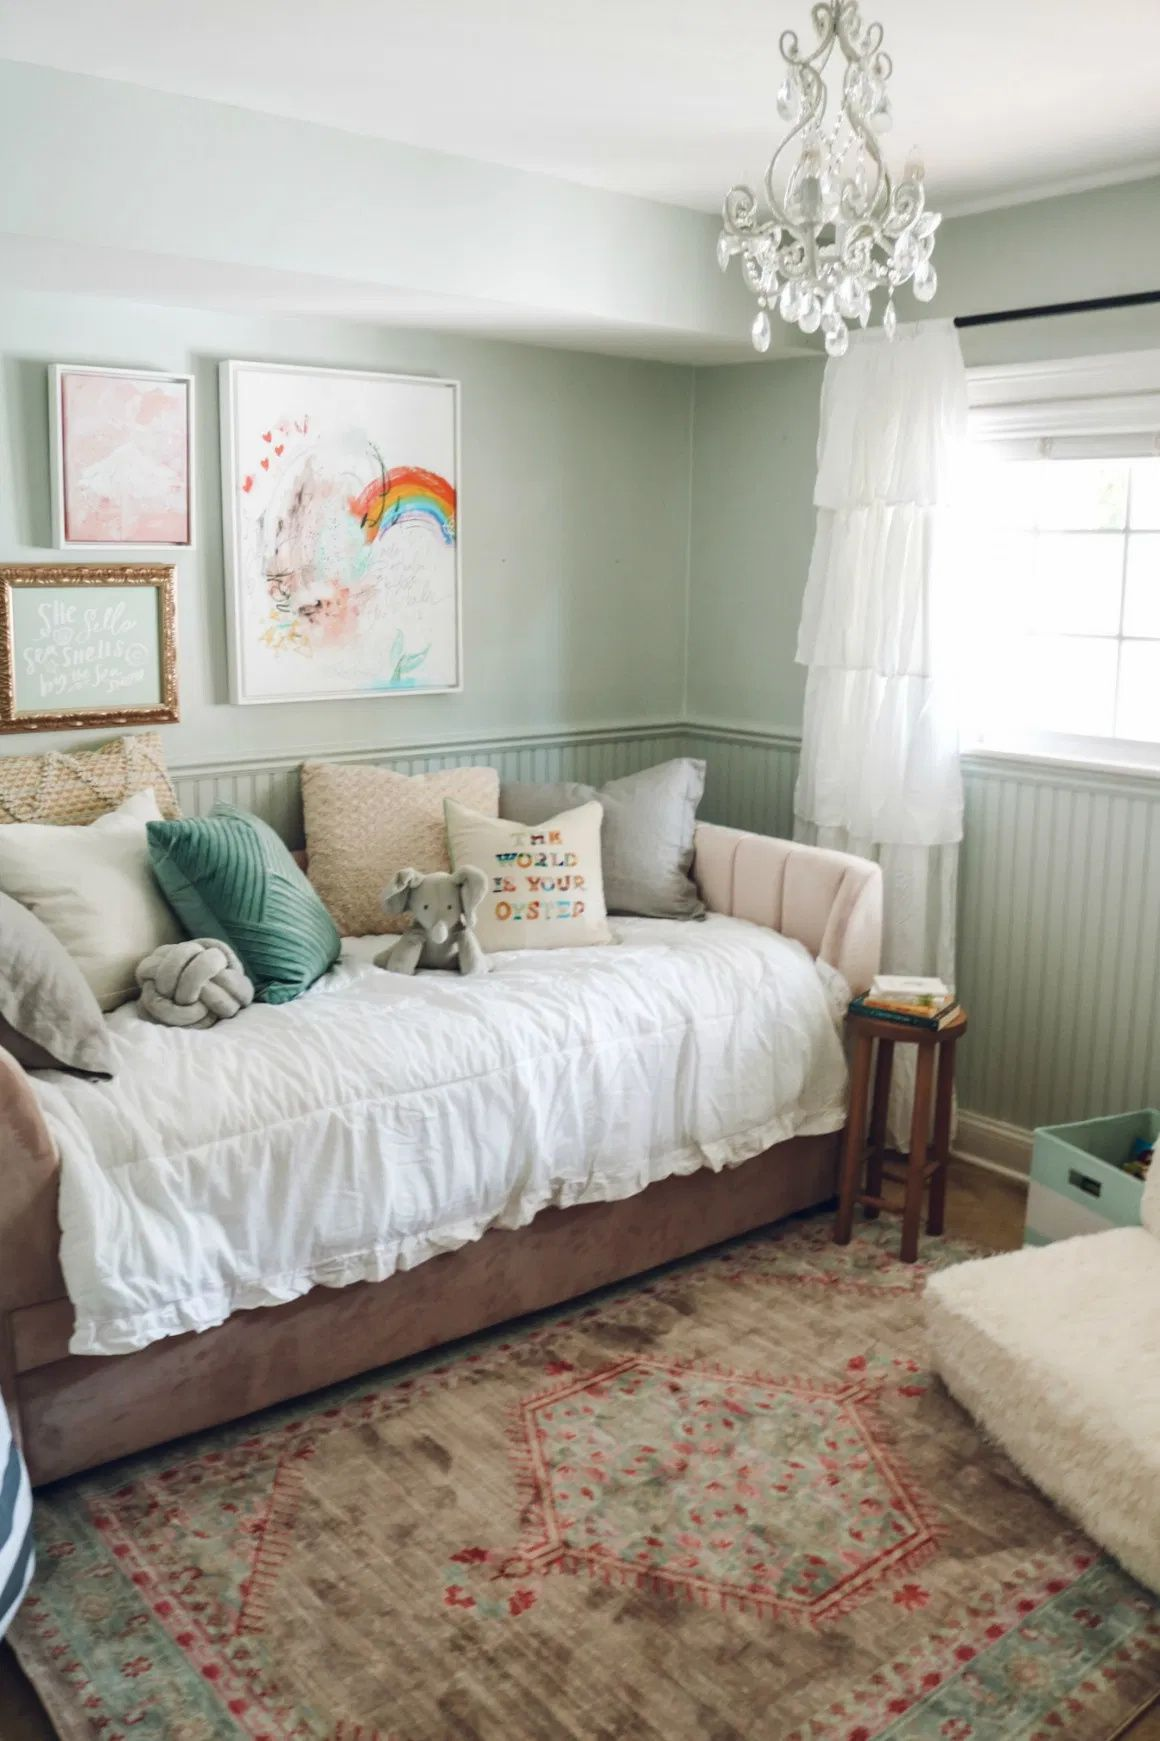 A Bedroom For A 5 Year Old Or 16 Year Old Girl Makeover Nesting With Grace Girls Bedroom Makeover Tween Girl Bedroom Bedroom Decor